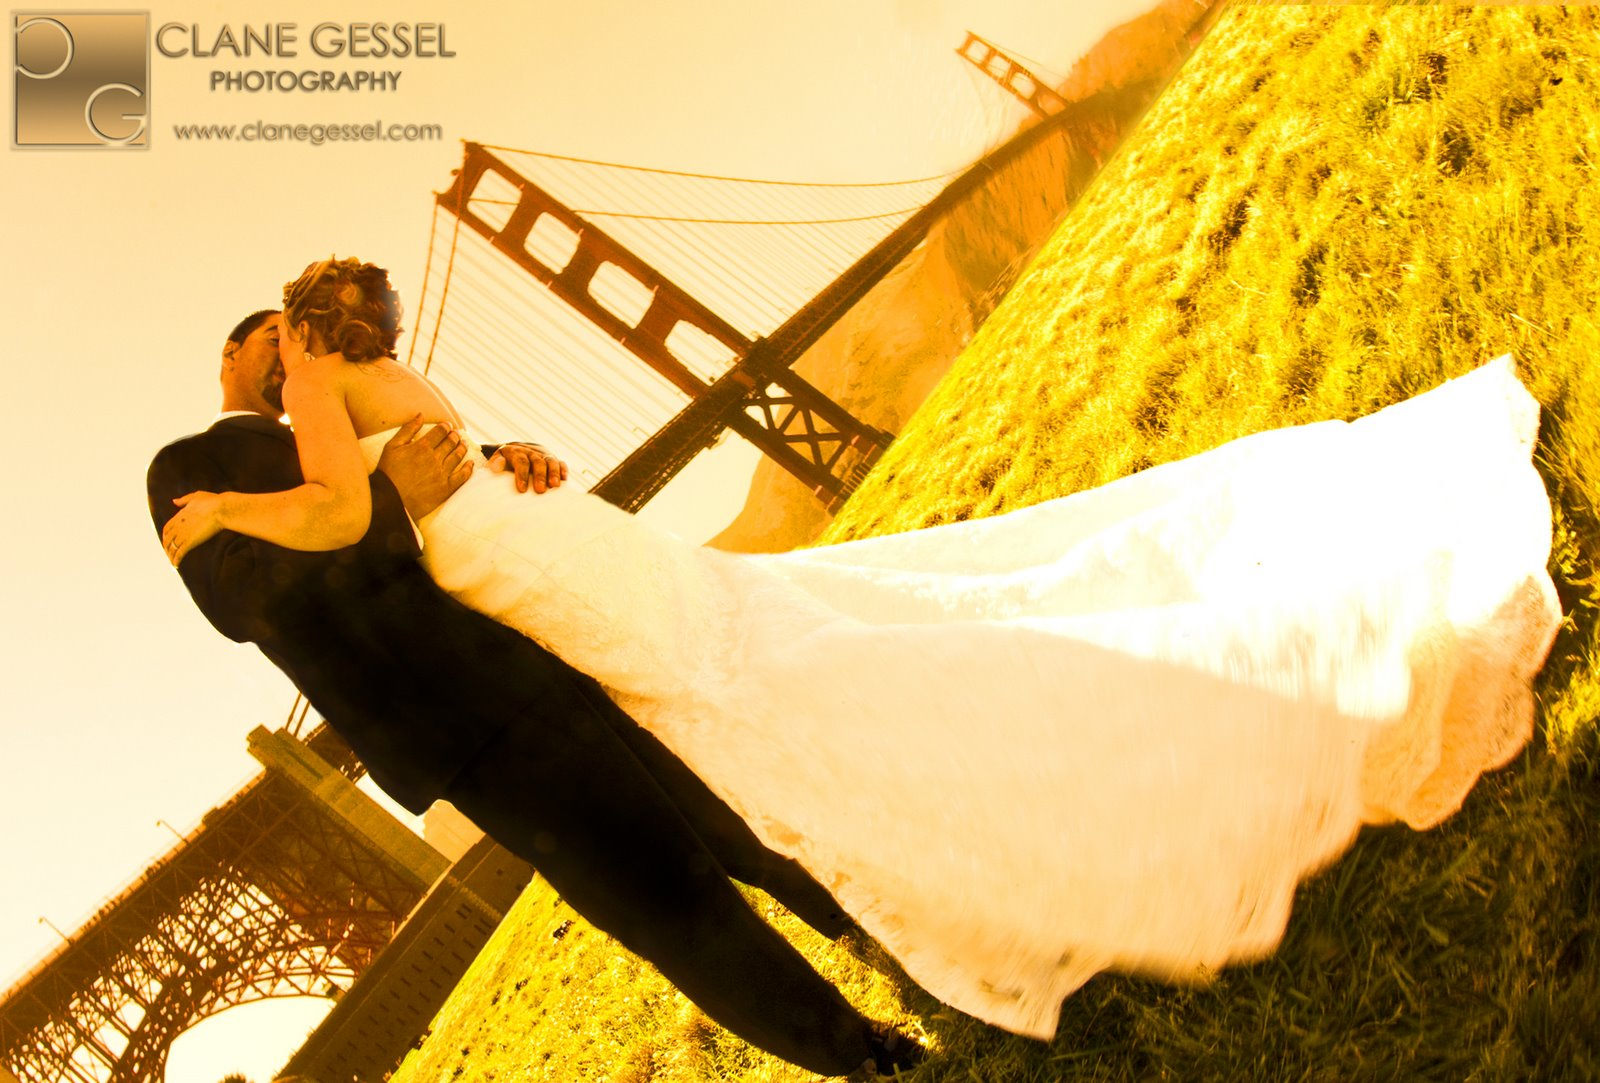 Award-winning san francisco wedding photography, wedding photographer, golden gate bridge